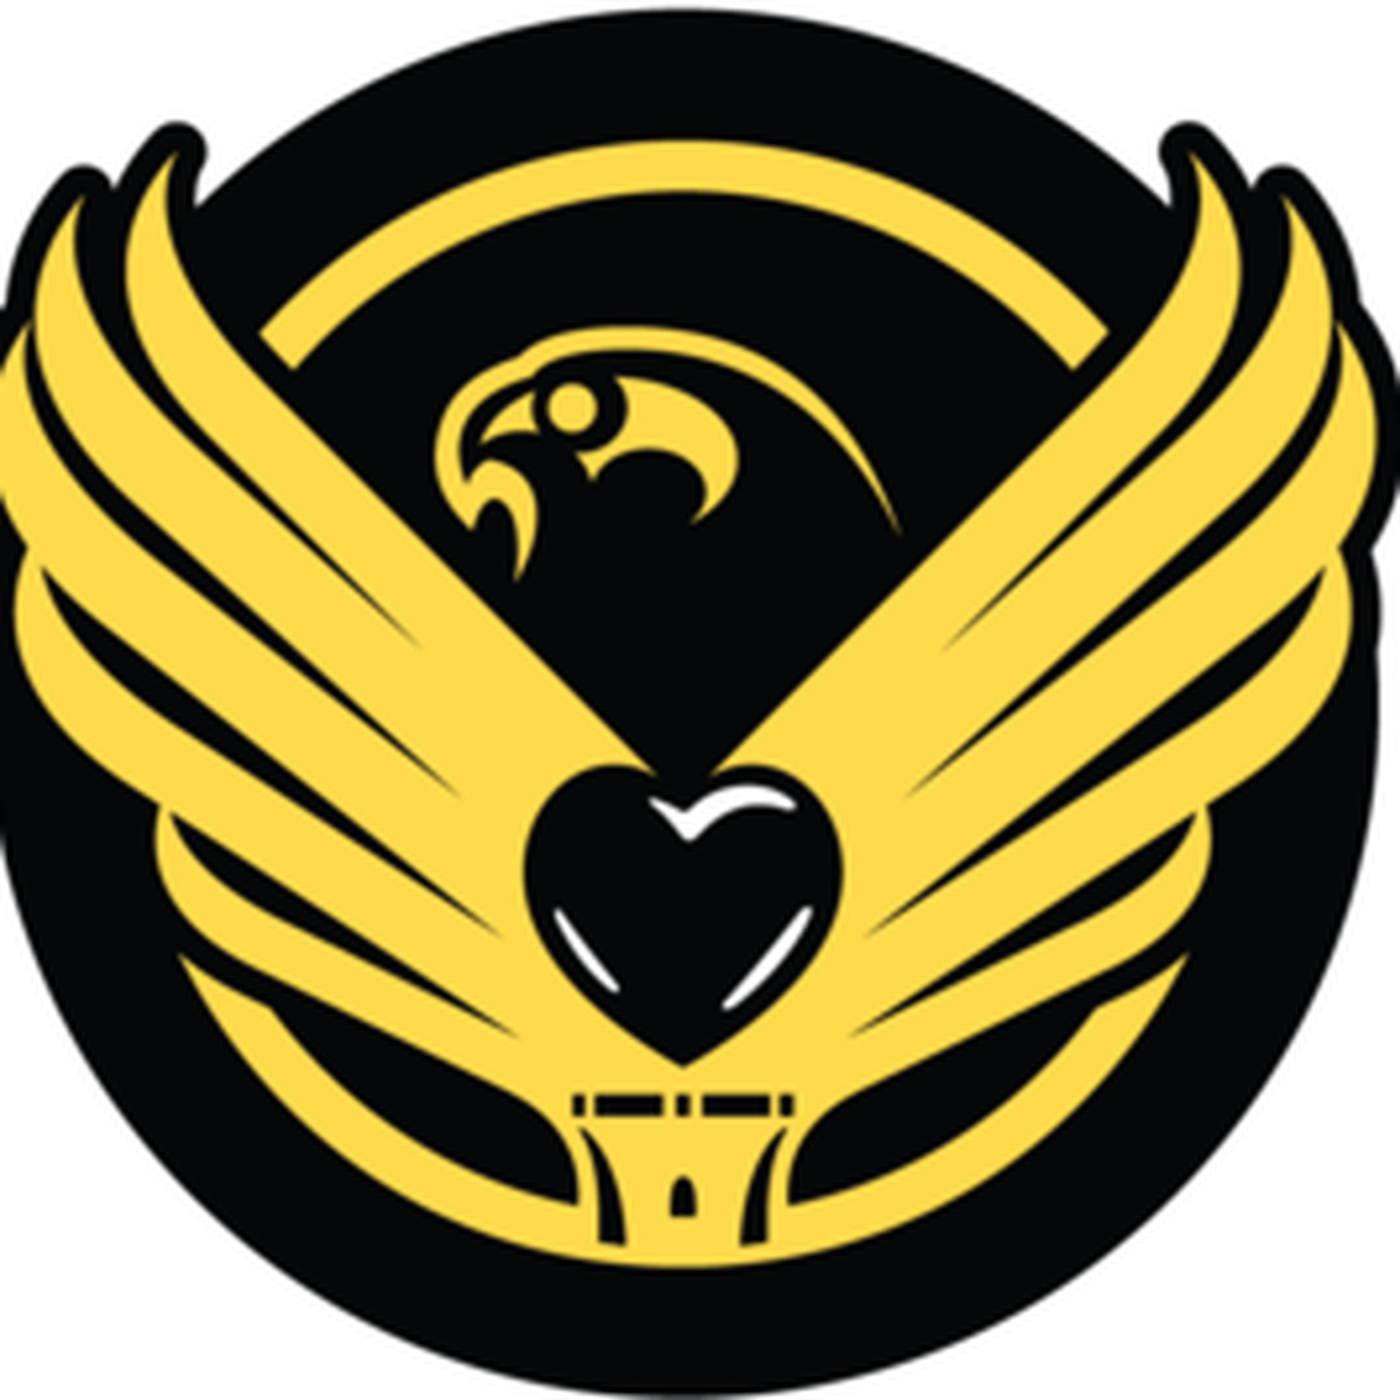 Nervous clipart nail biter. Herky the hawk bleeds